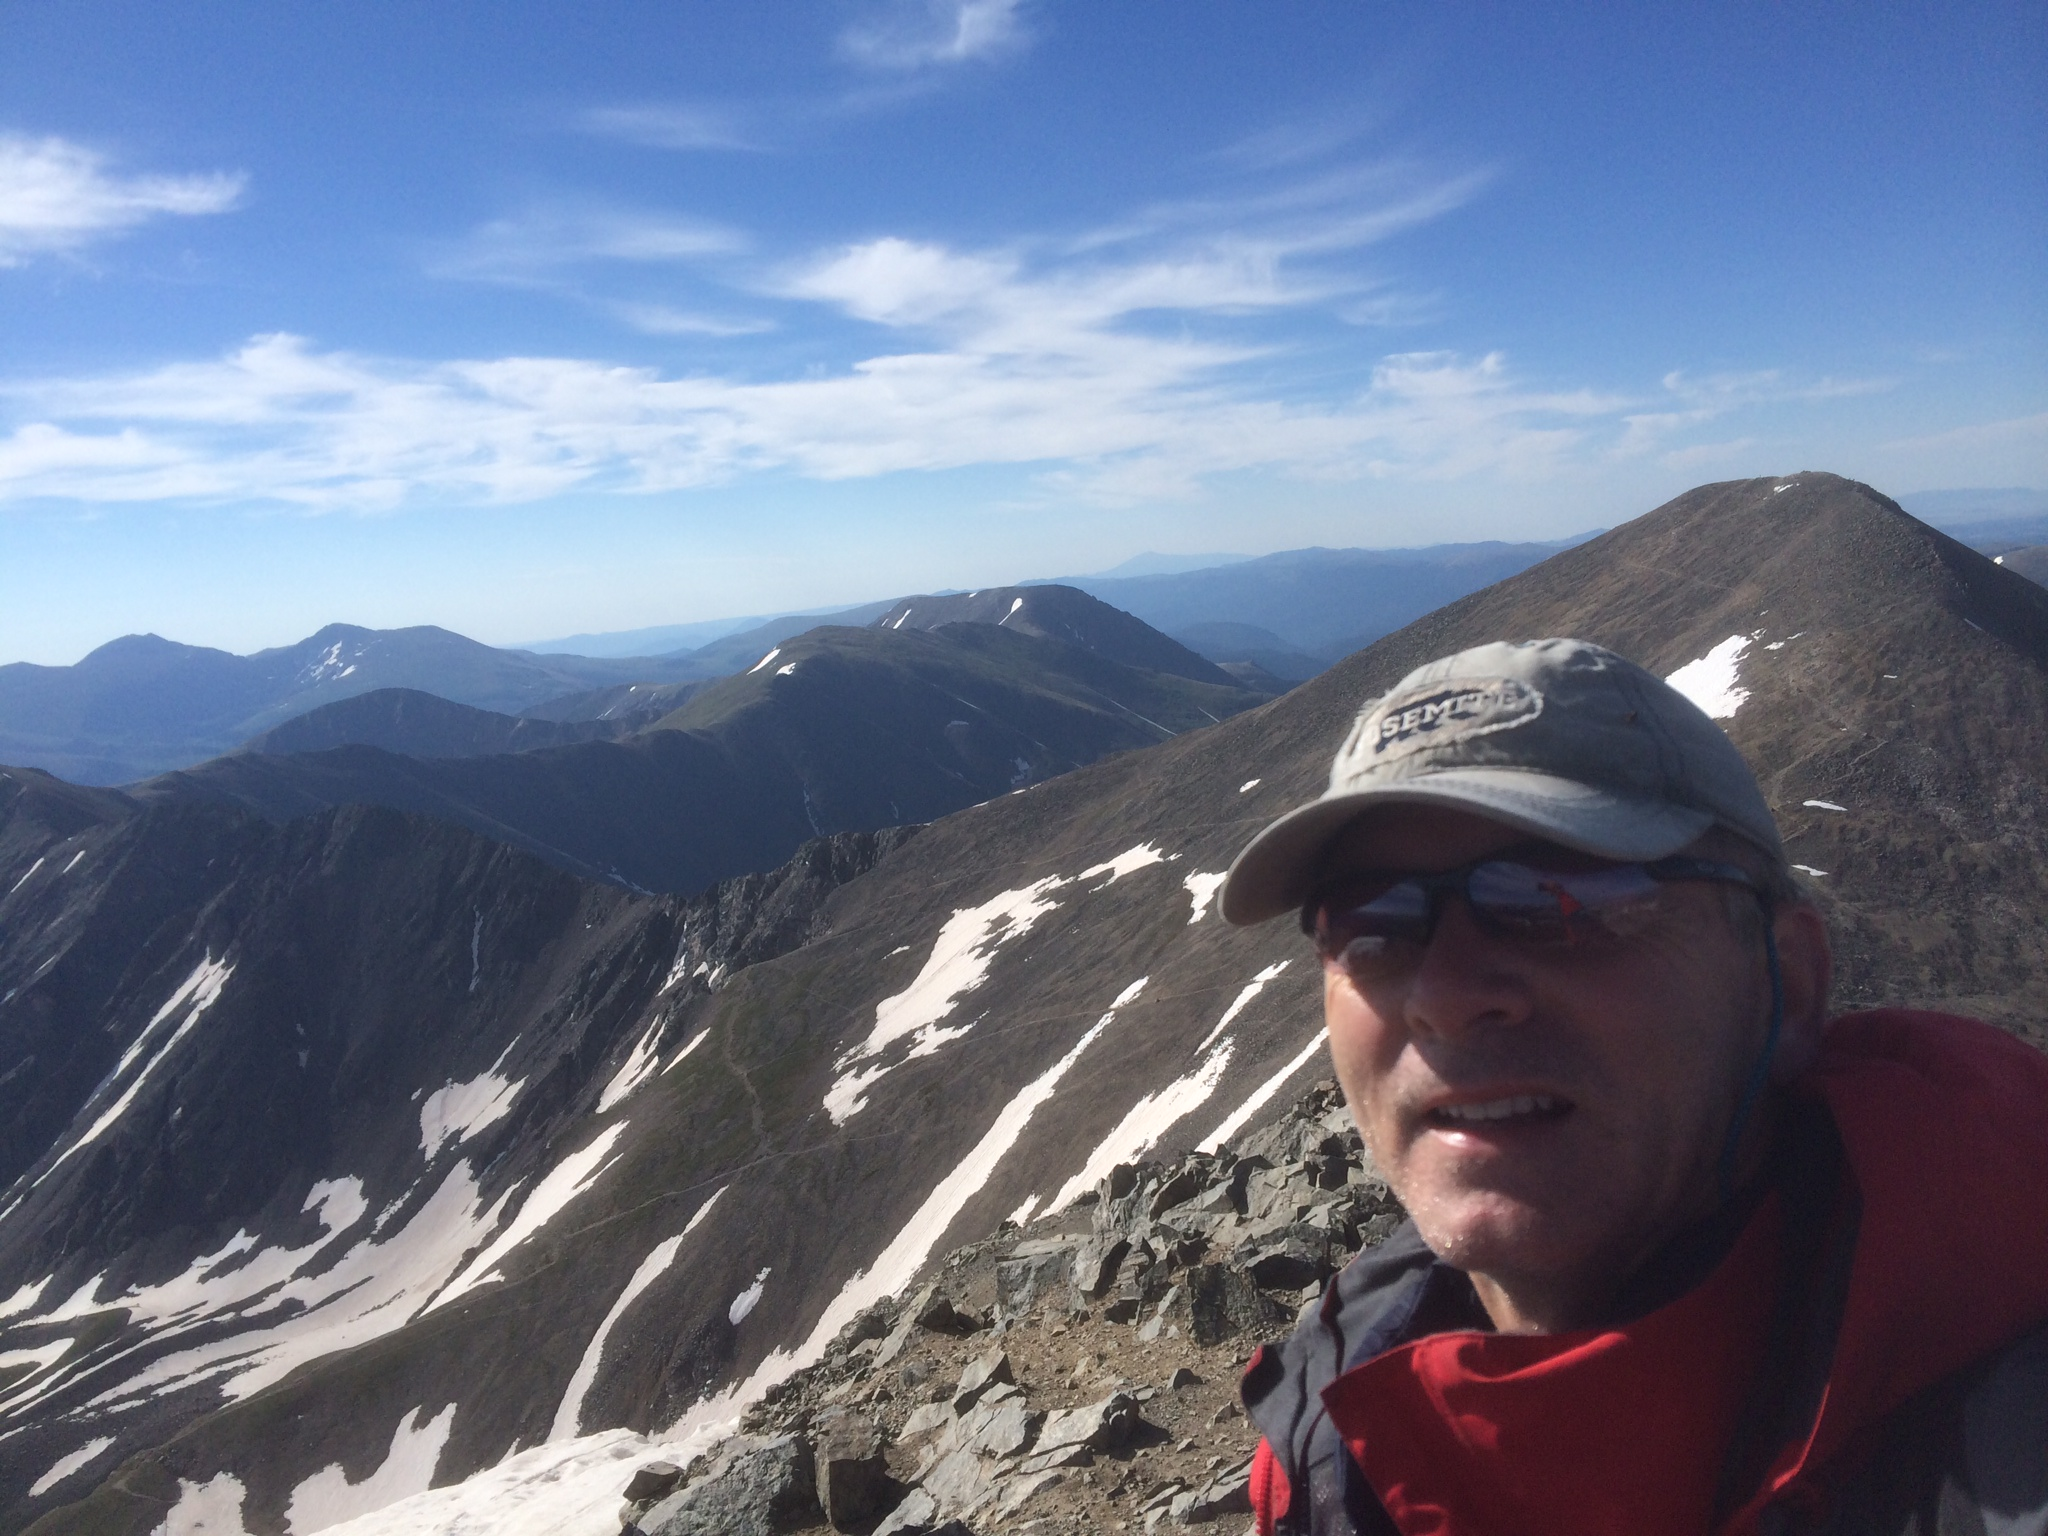 Grays and Torreys Peak 14'er Climb - Uphillhike